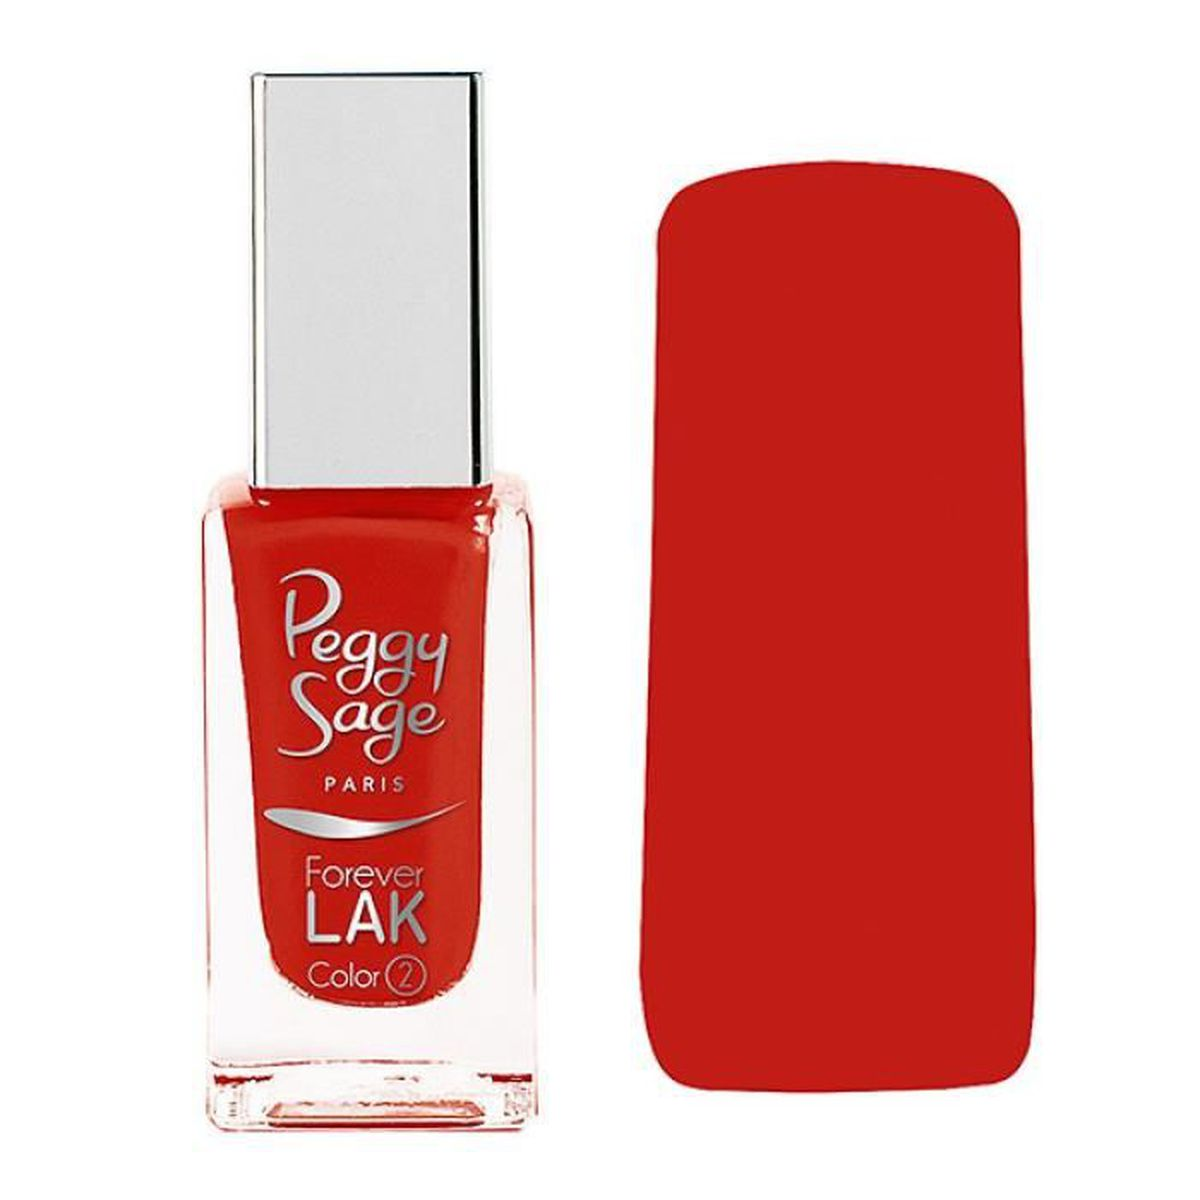 vernis ongles peggy sage 11ml forever lak perfect red achat vente vernis a ongles vernis. Black Bedroom Furniture Sets. Home Design Ideas